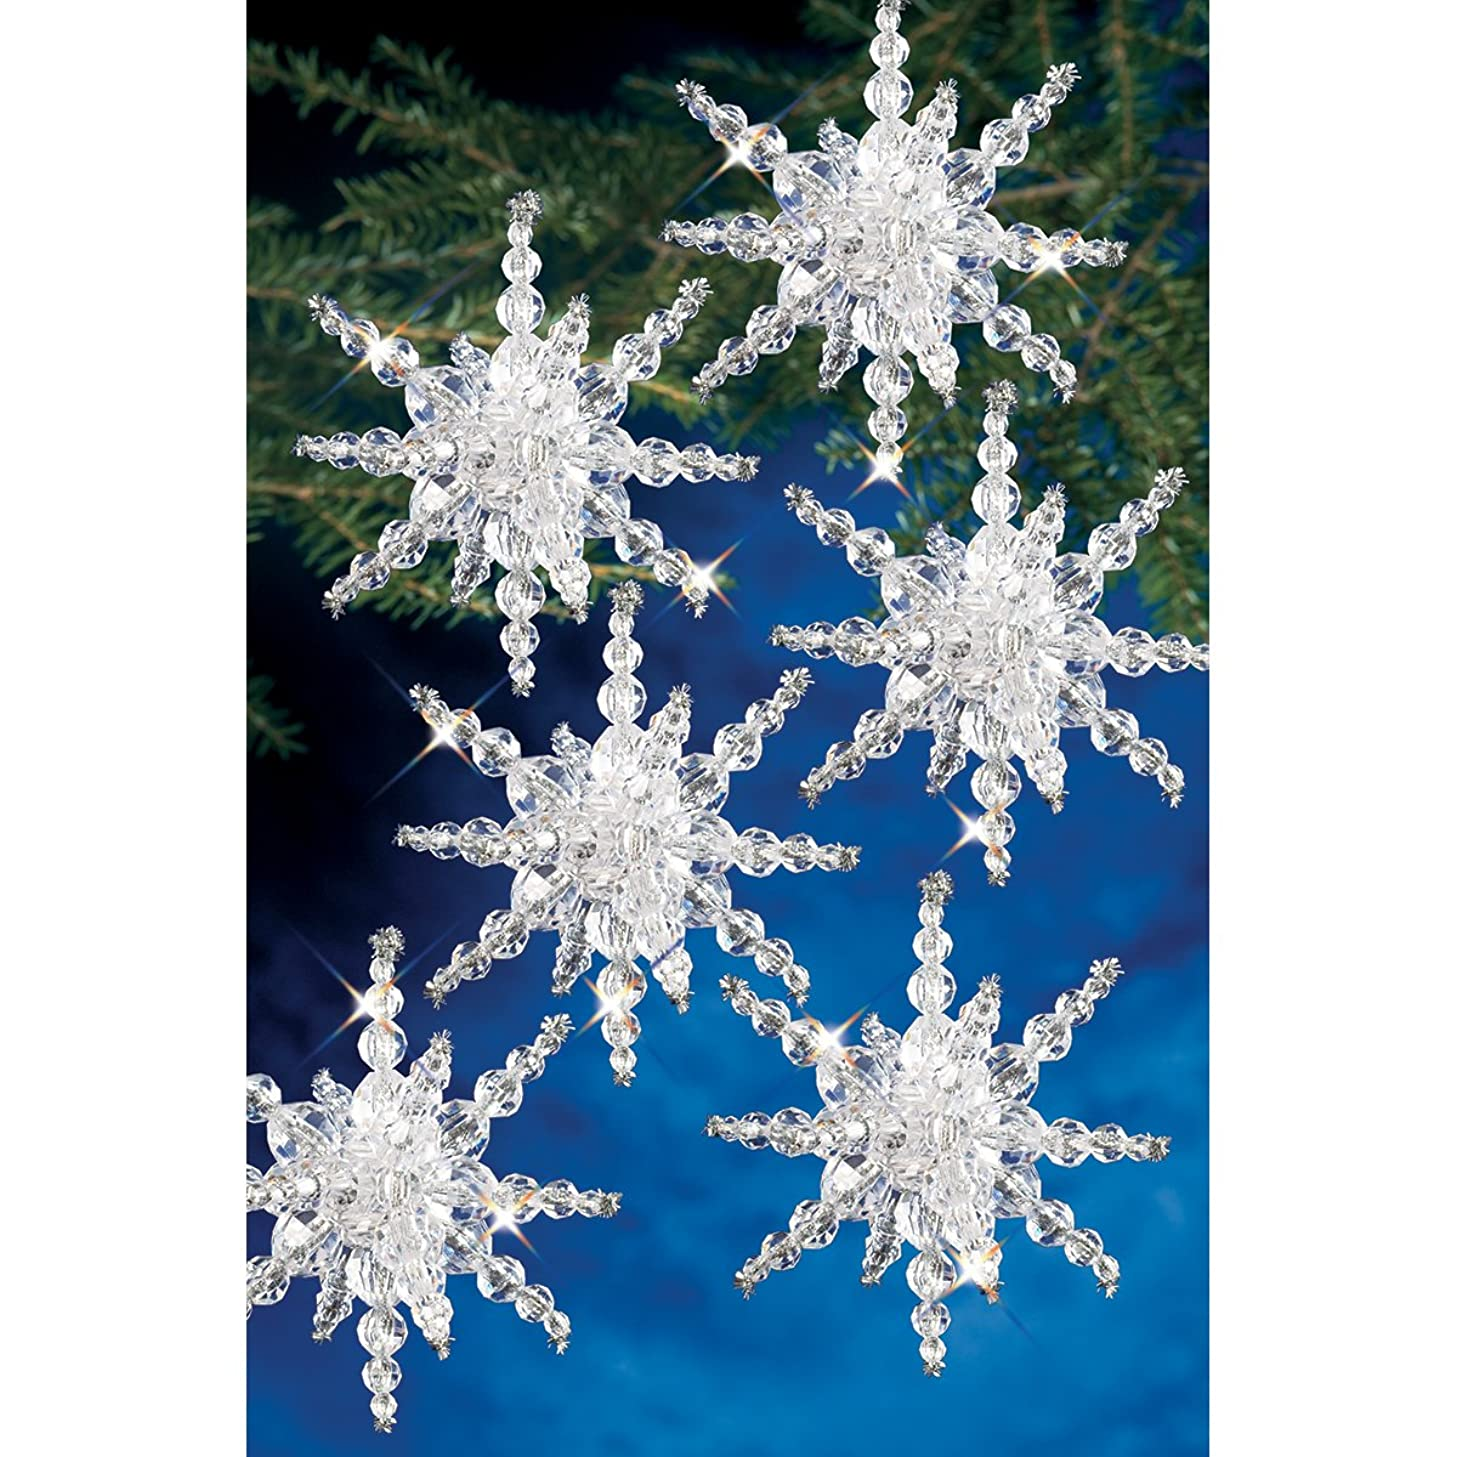 Beadery BOK-7282 Holiday Beaded Ornament Kit, Snow Cluster